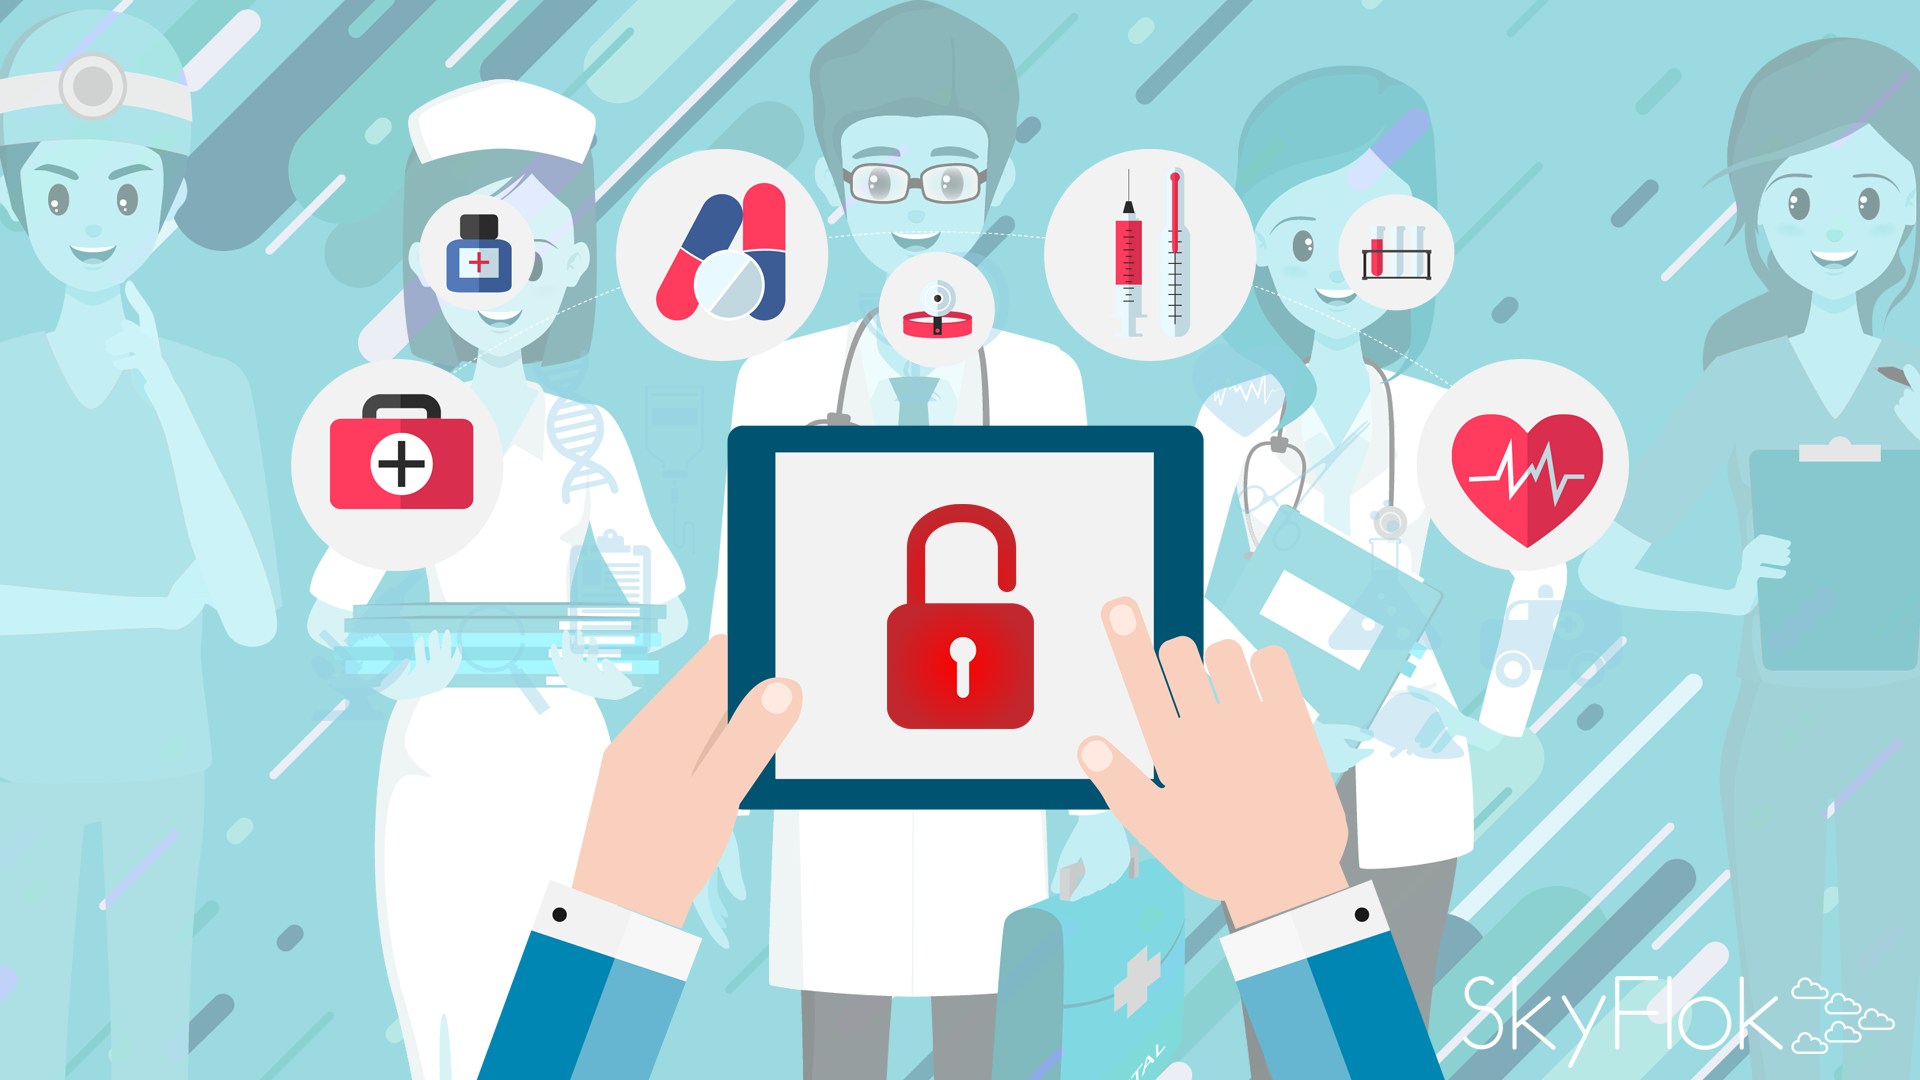 Most Healthcare Workers Admit to Non-Secure Healthcare Data Sharing